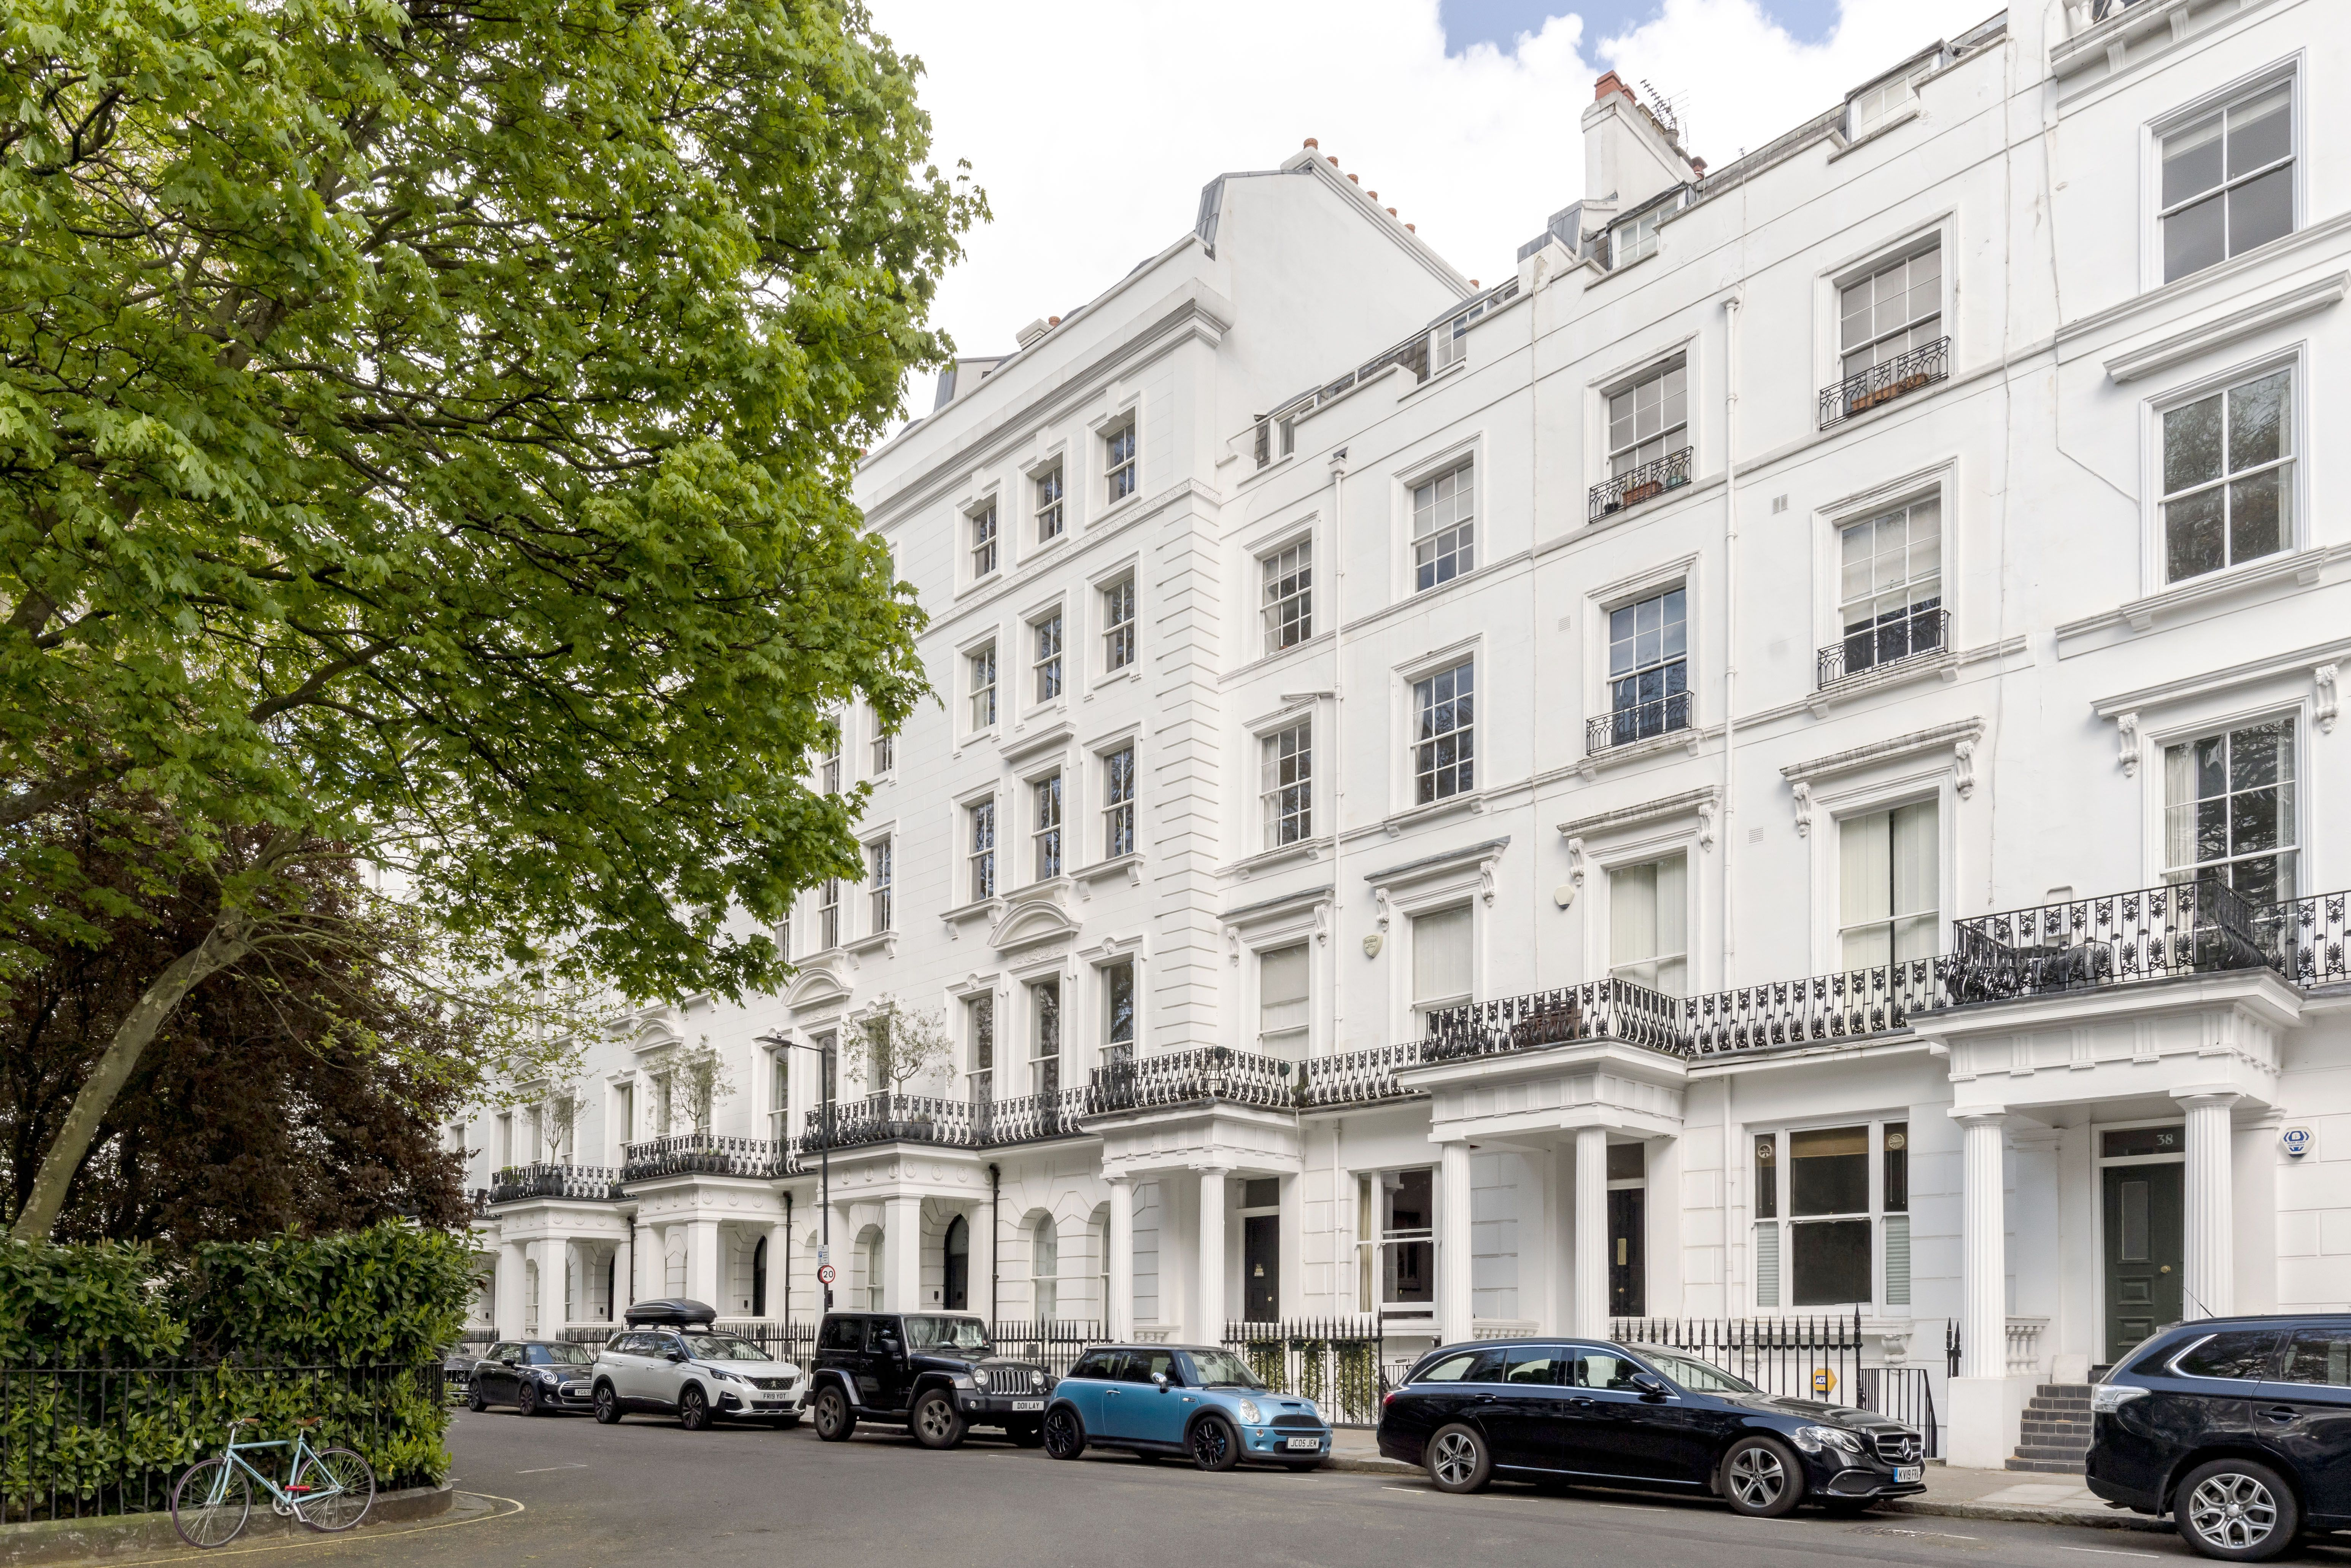 Stylish one-bedroom apartment with blush pink interiors for sale in Bayswater